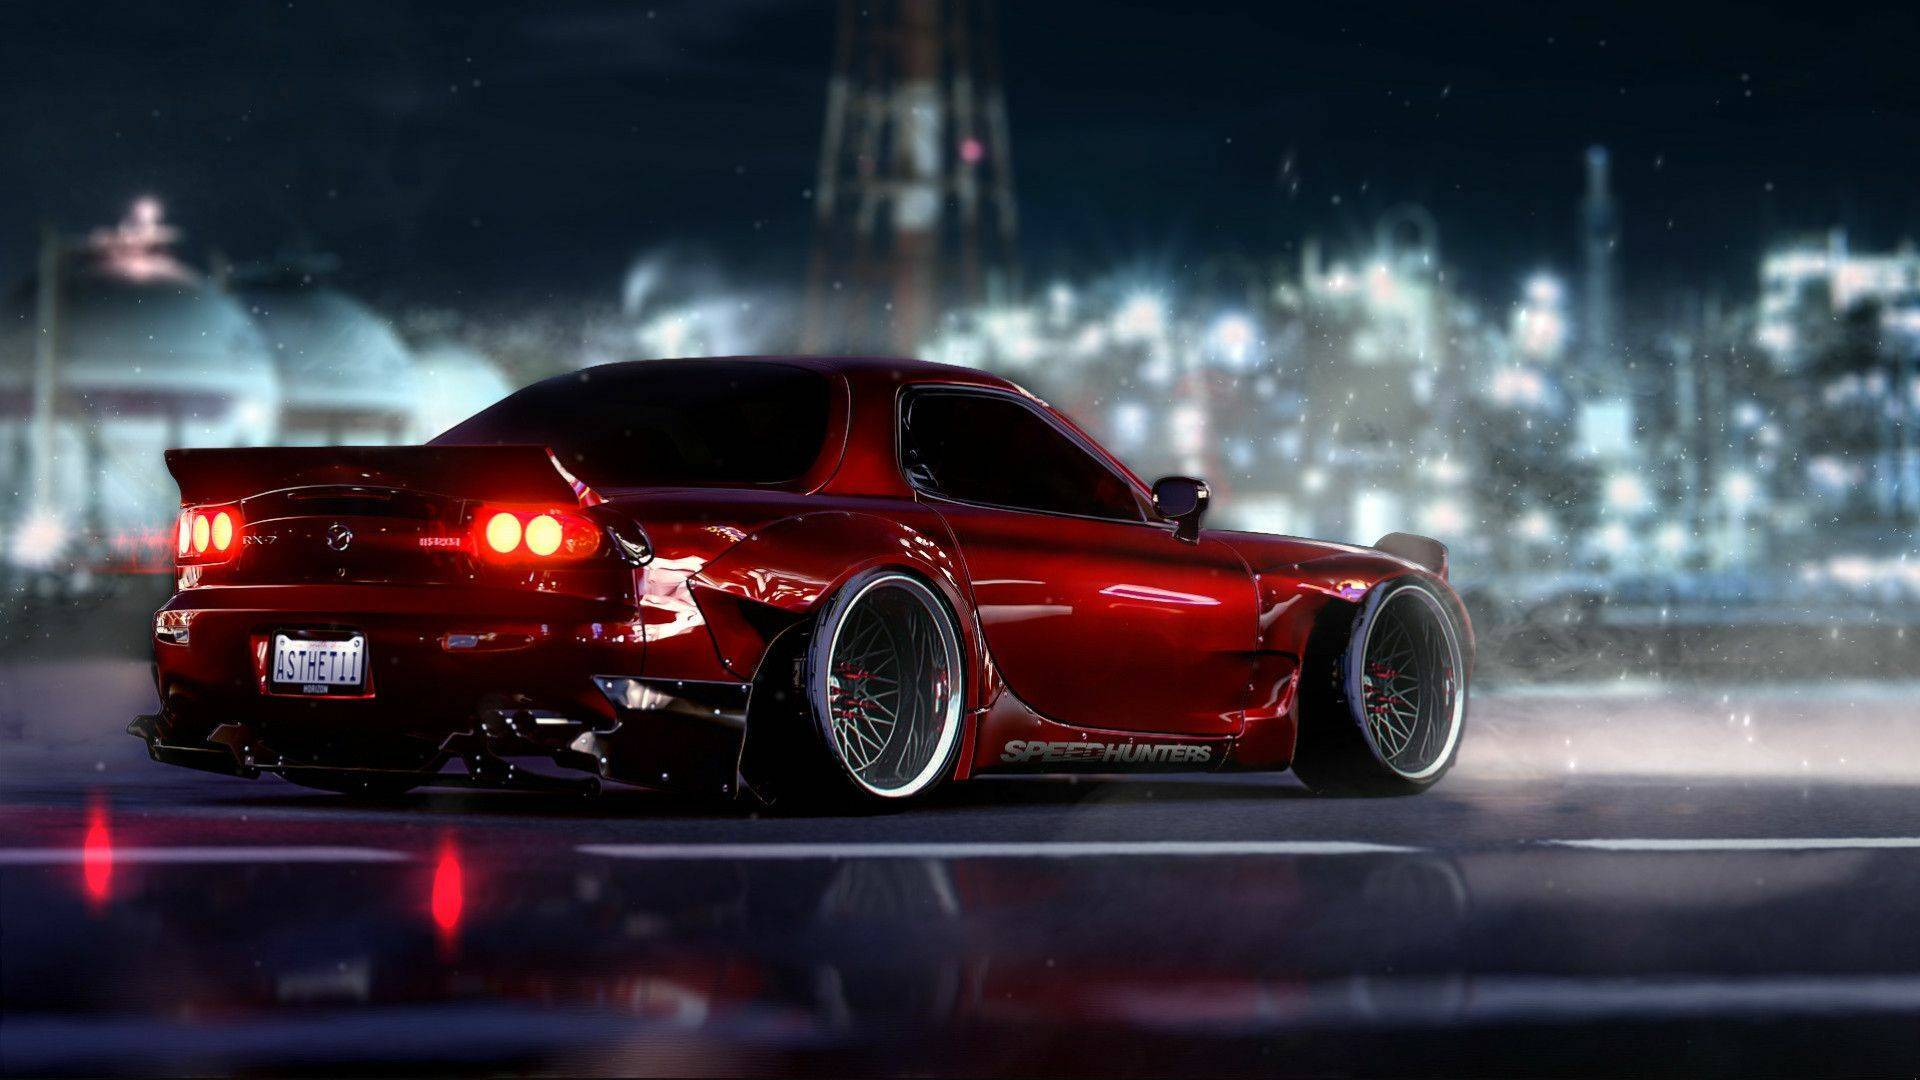 Red Mazda RX-7 - cars live wallpaper DOWNLOAD FREE